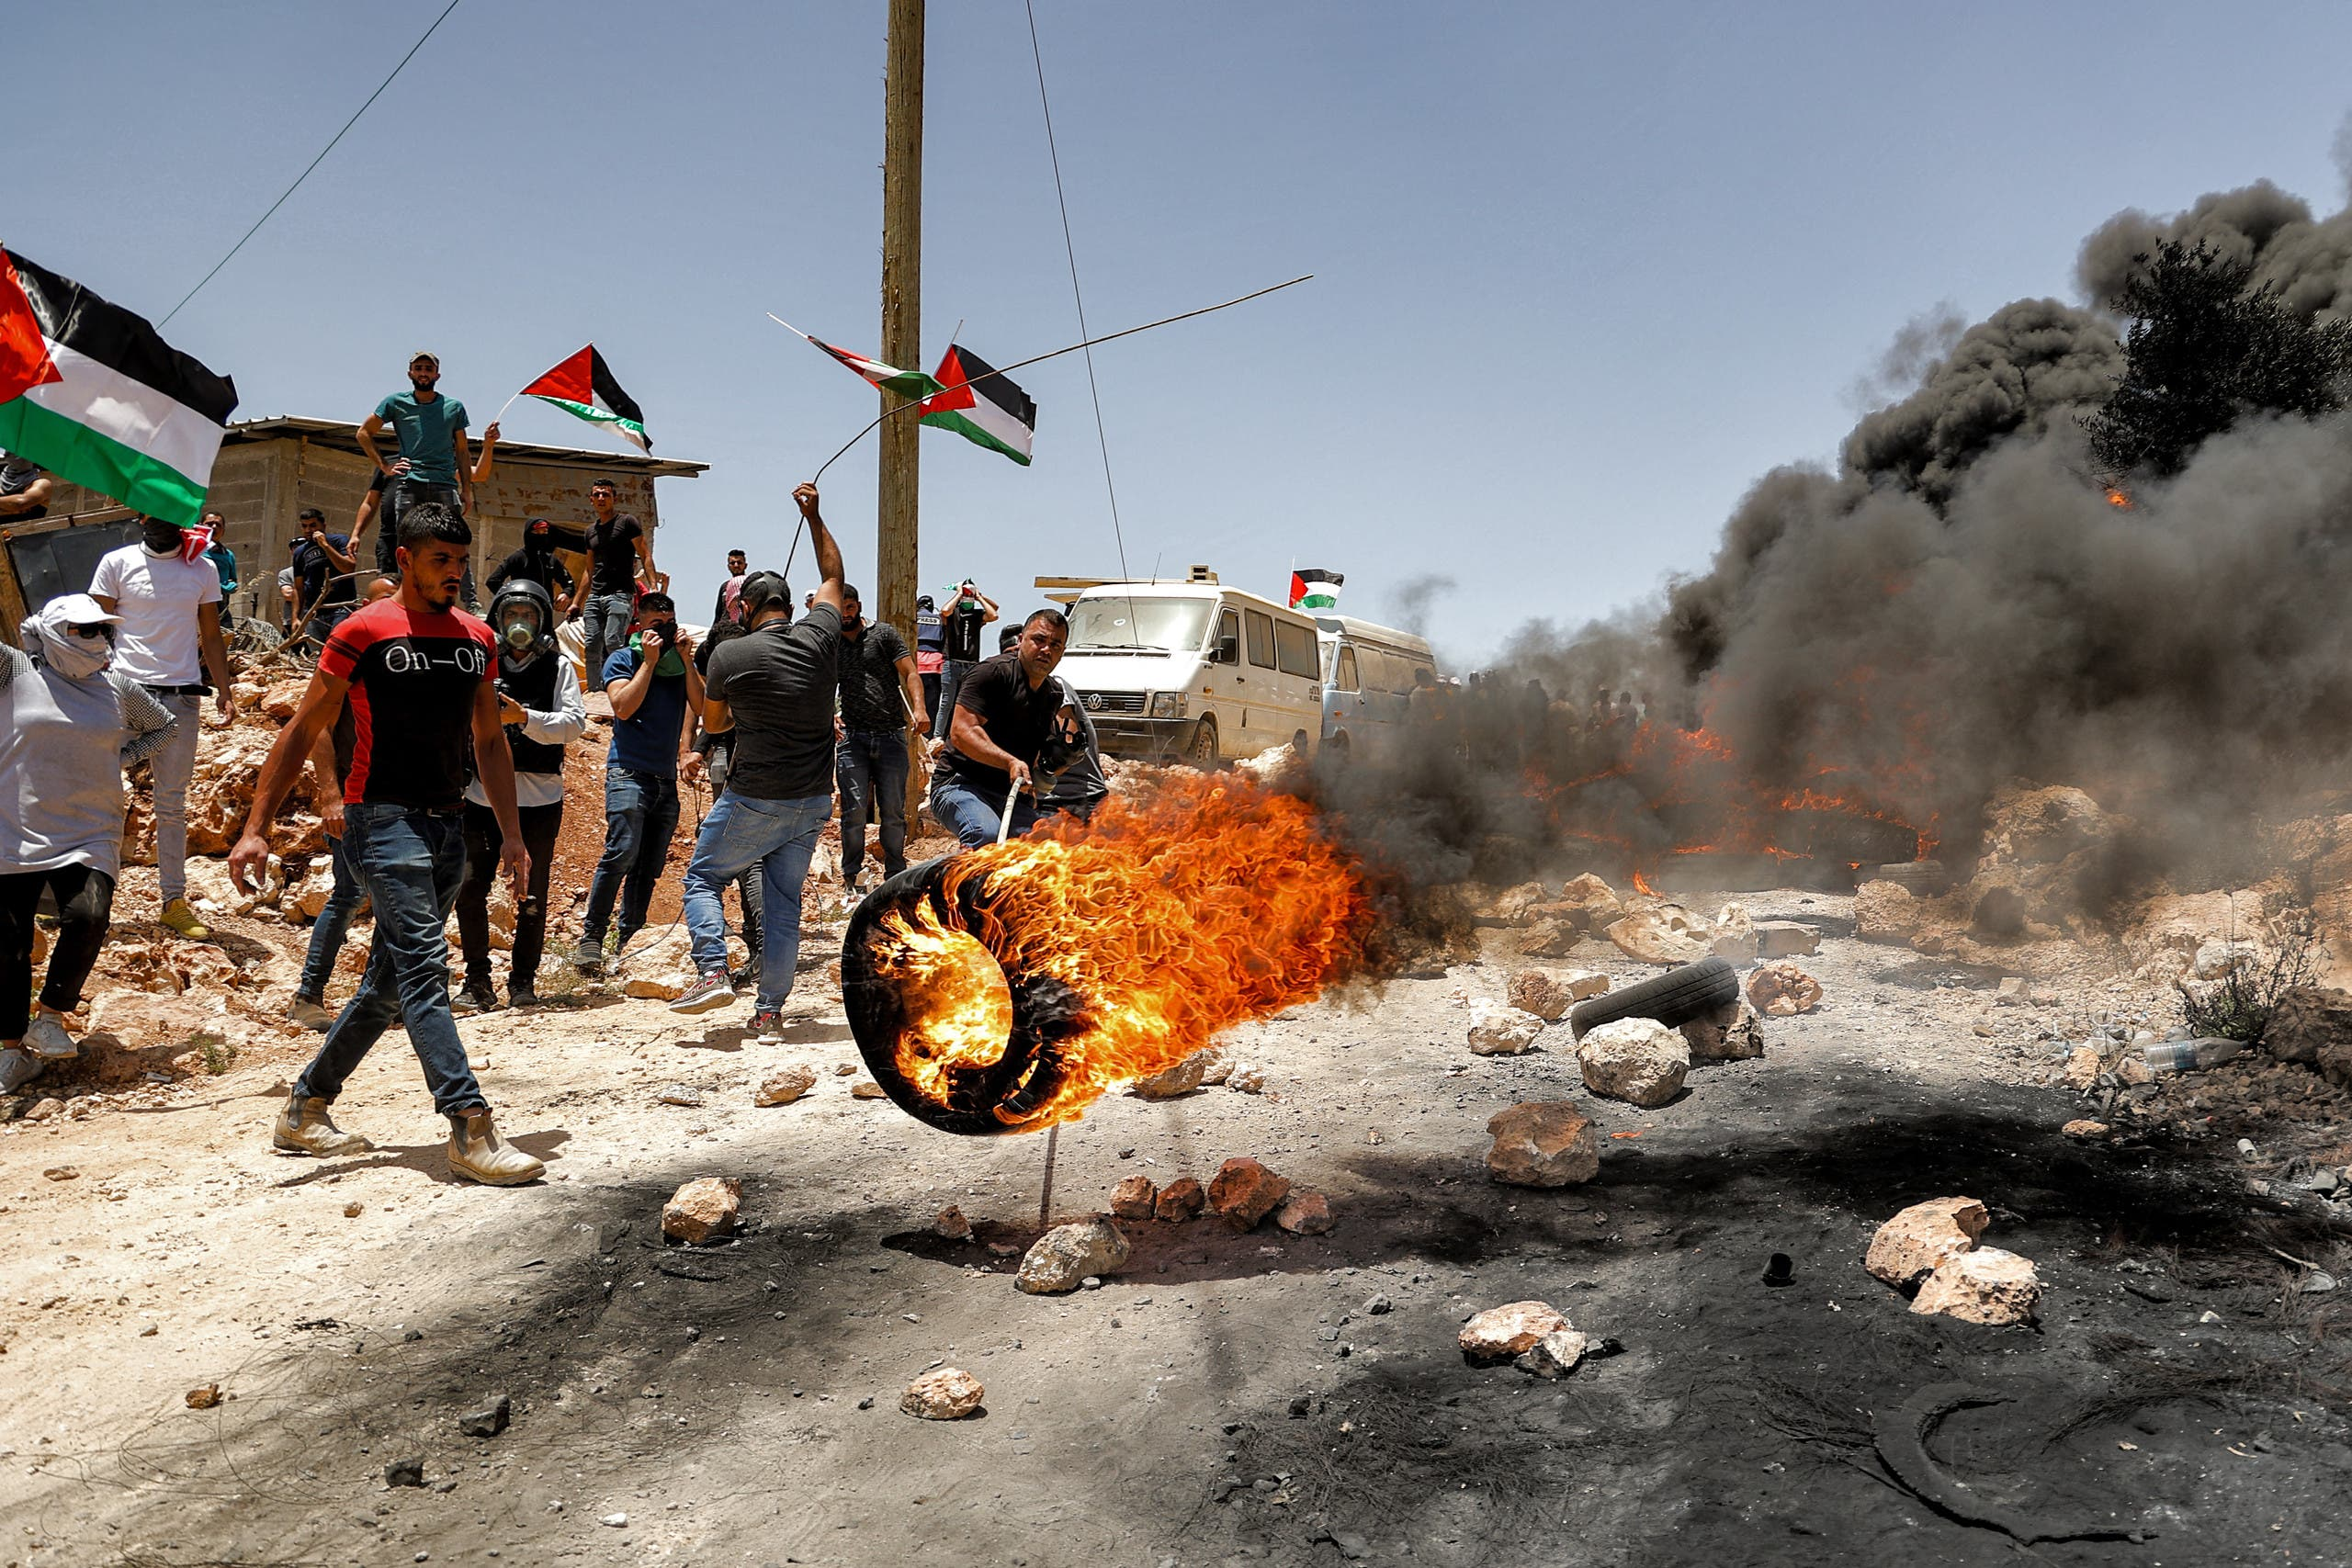 Palestinian protesters set tires aflame during clashes with Israeli security forces following a demonstration in the village of Beita, south of Nablus, in the occupied West Bank on June 11, 2021. (AFP)